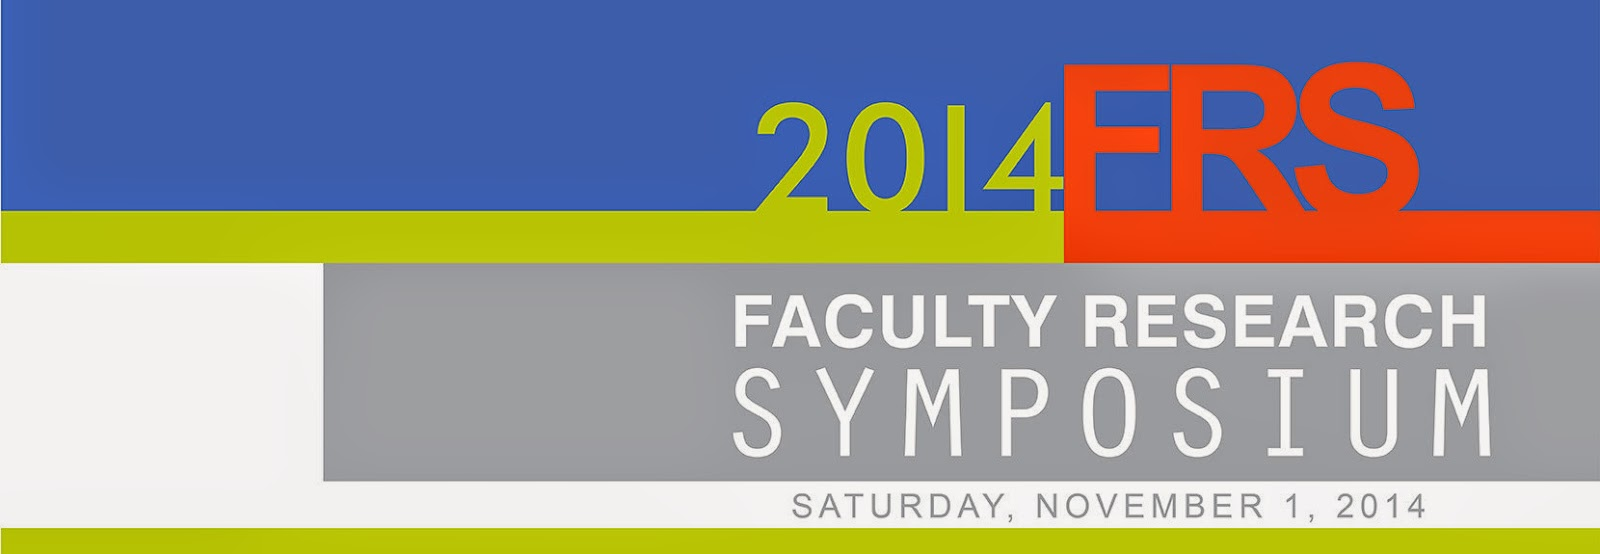 http://www.luther.edu/academics/dean/faculty/faculty-research-symposium/schedule/